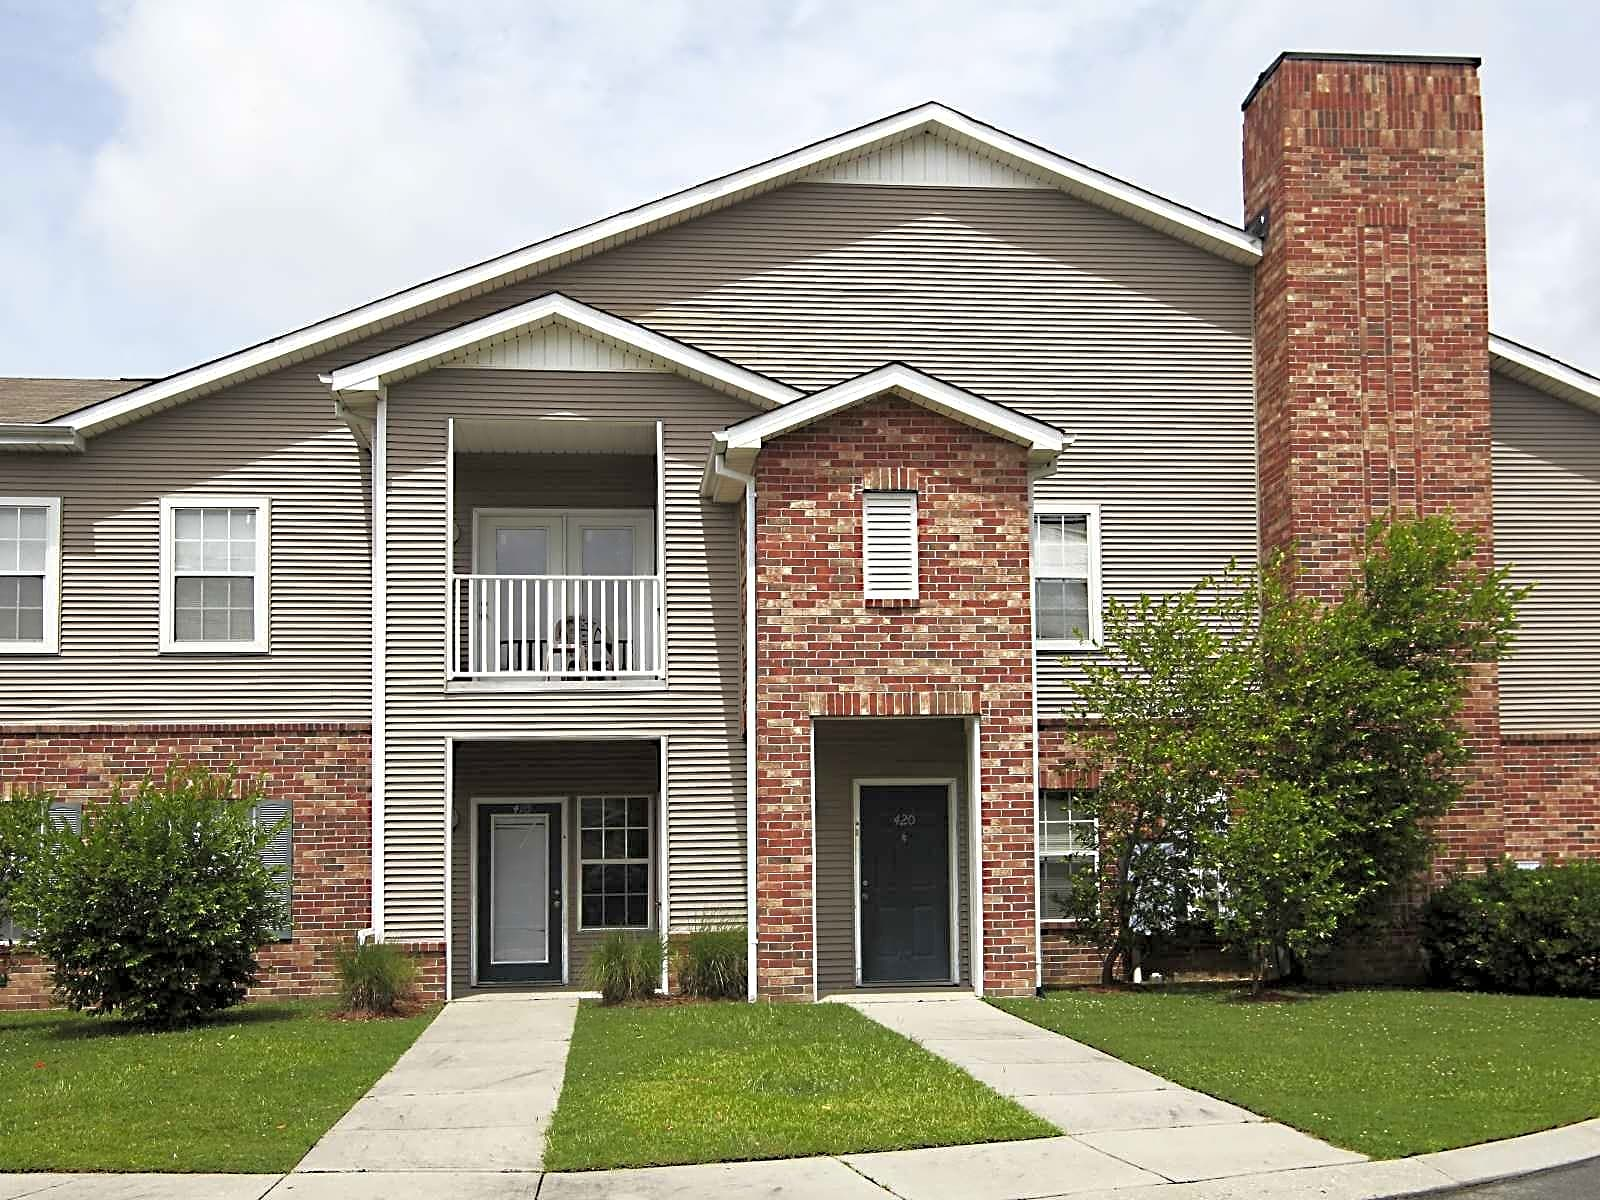 Apartments for Rent in Gulfport MS | Apartments.com